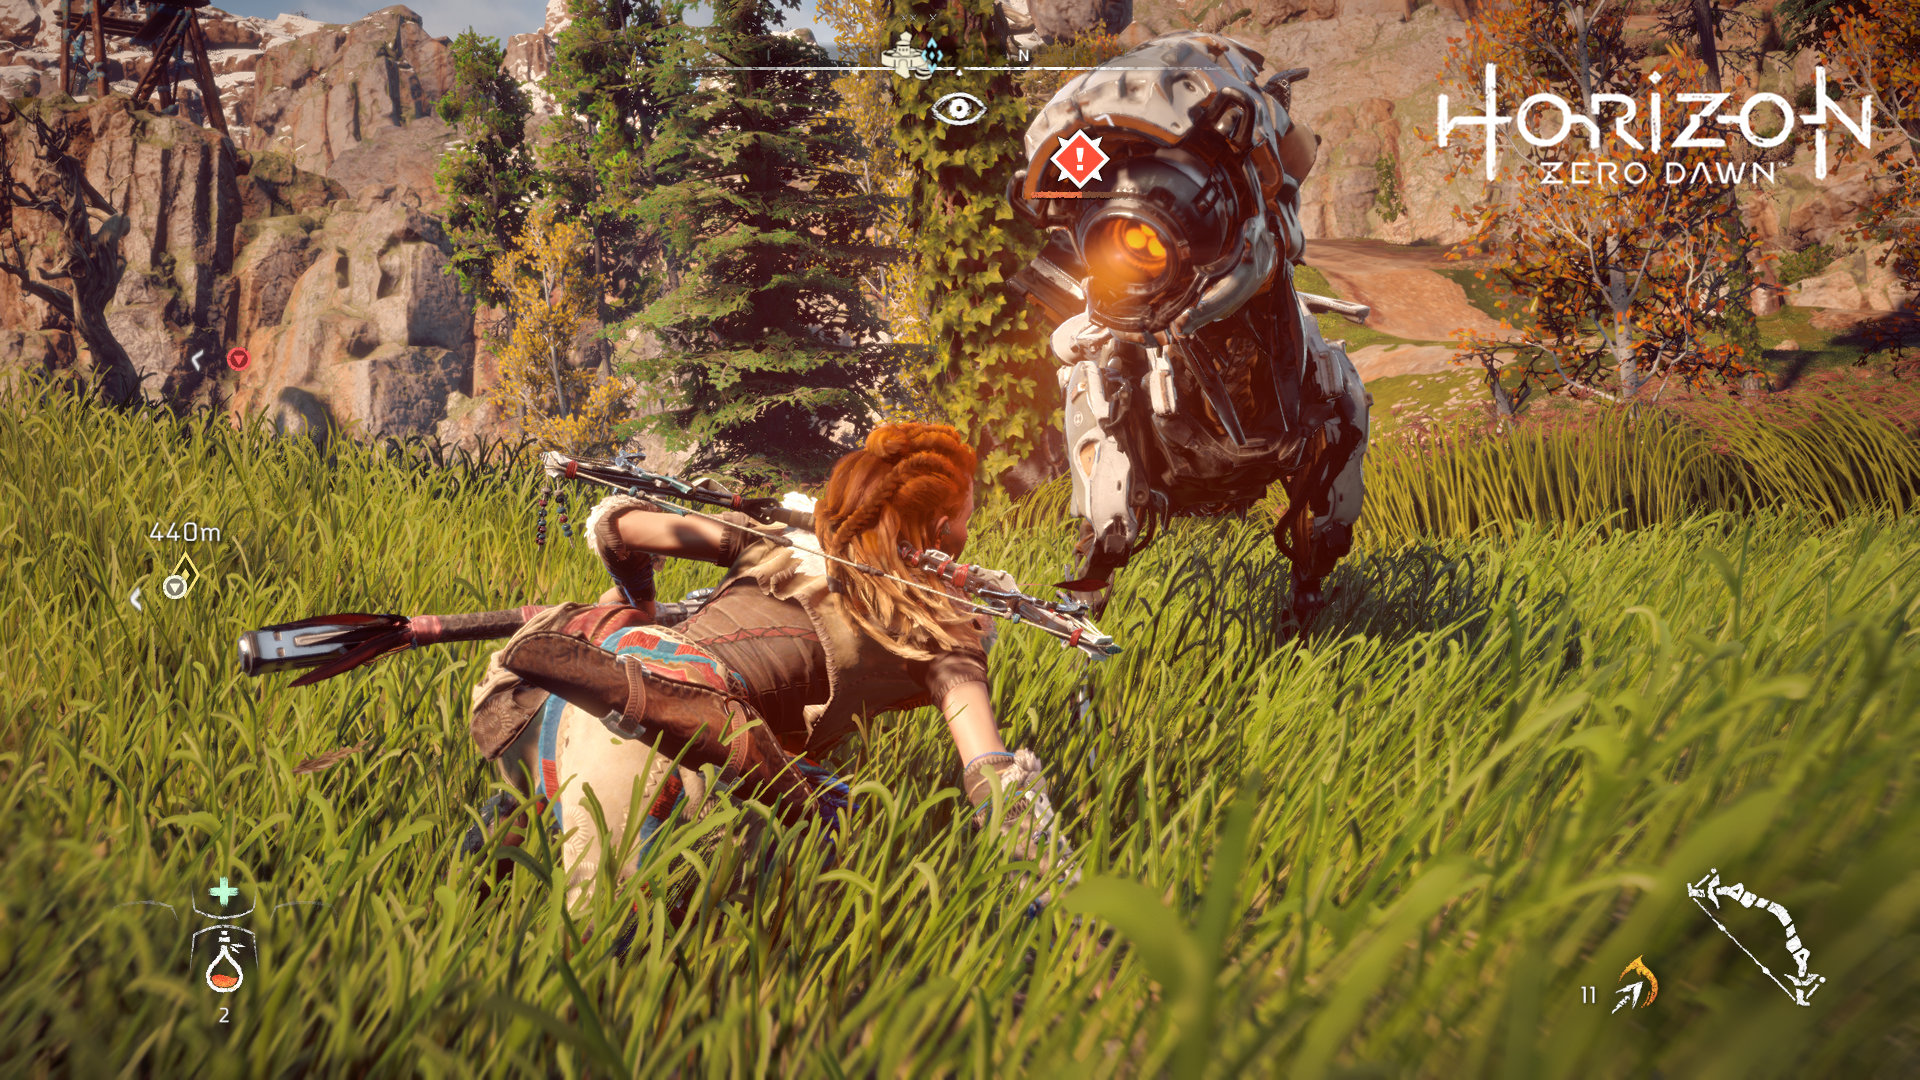 horizon-zero-dawn-screen-05-ps4-us-13jun16